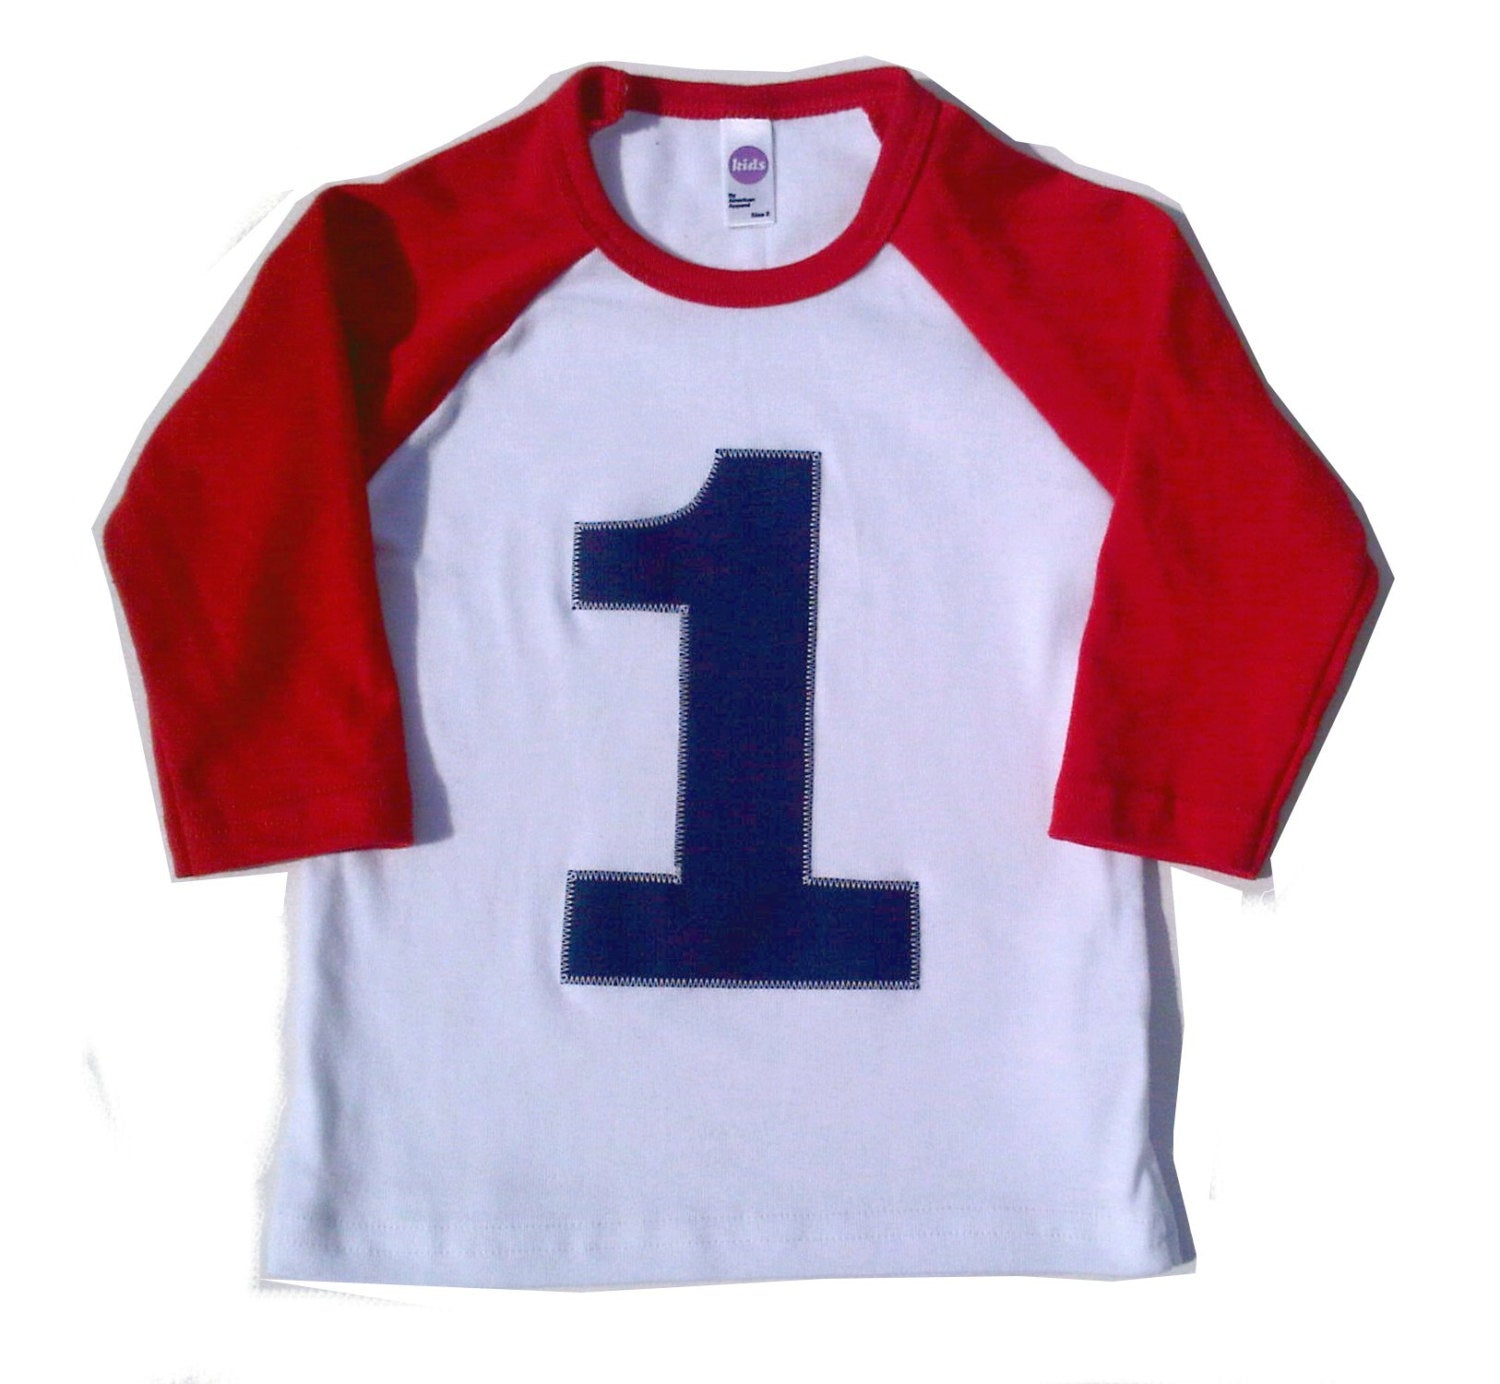 My First Birthday Red and White Raglan Shirt- Raglan boys 1st Birthday T Shirt Boy baseball navy blue number one 1 year old 12 months